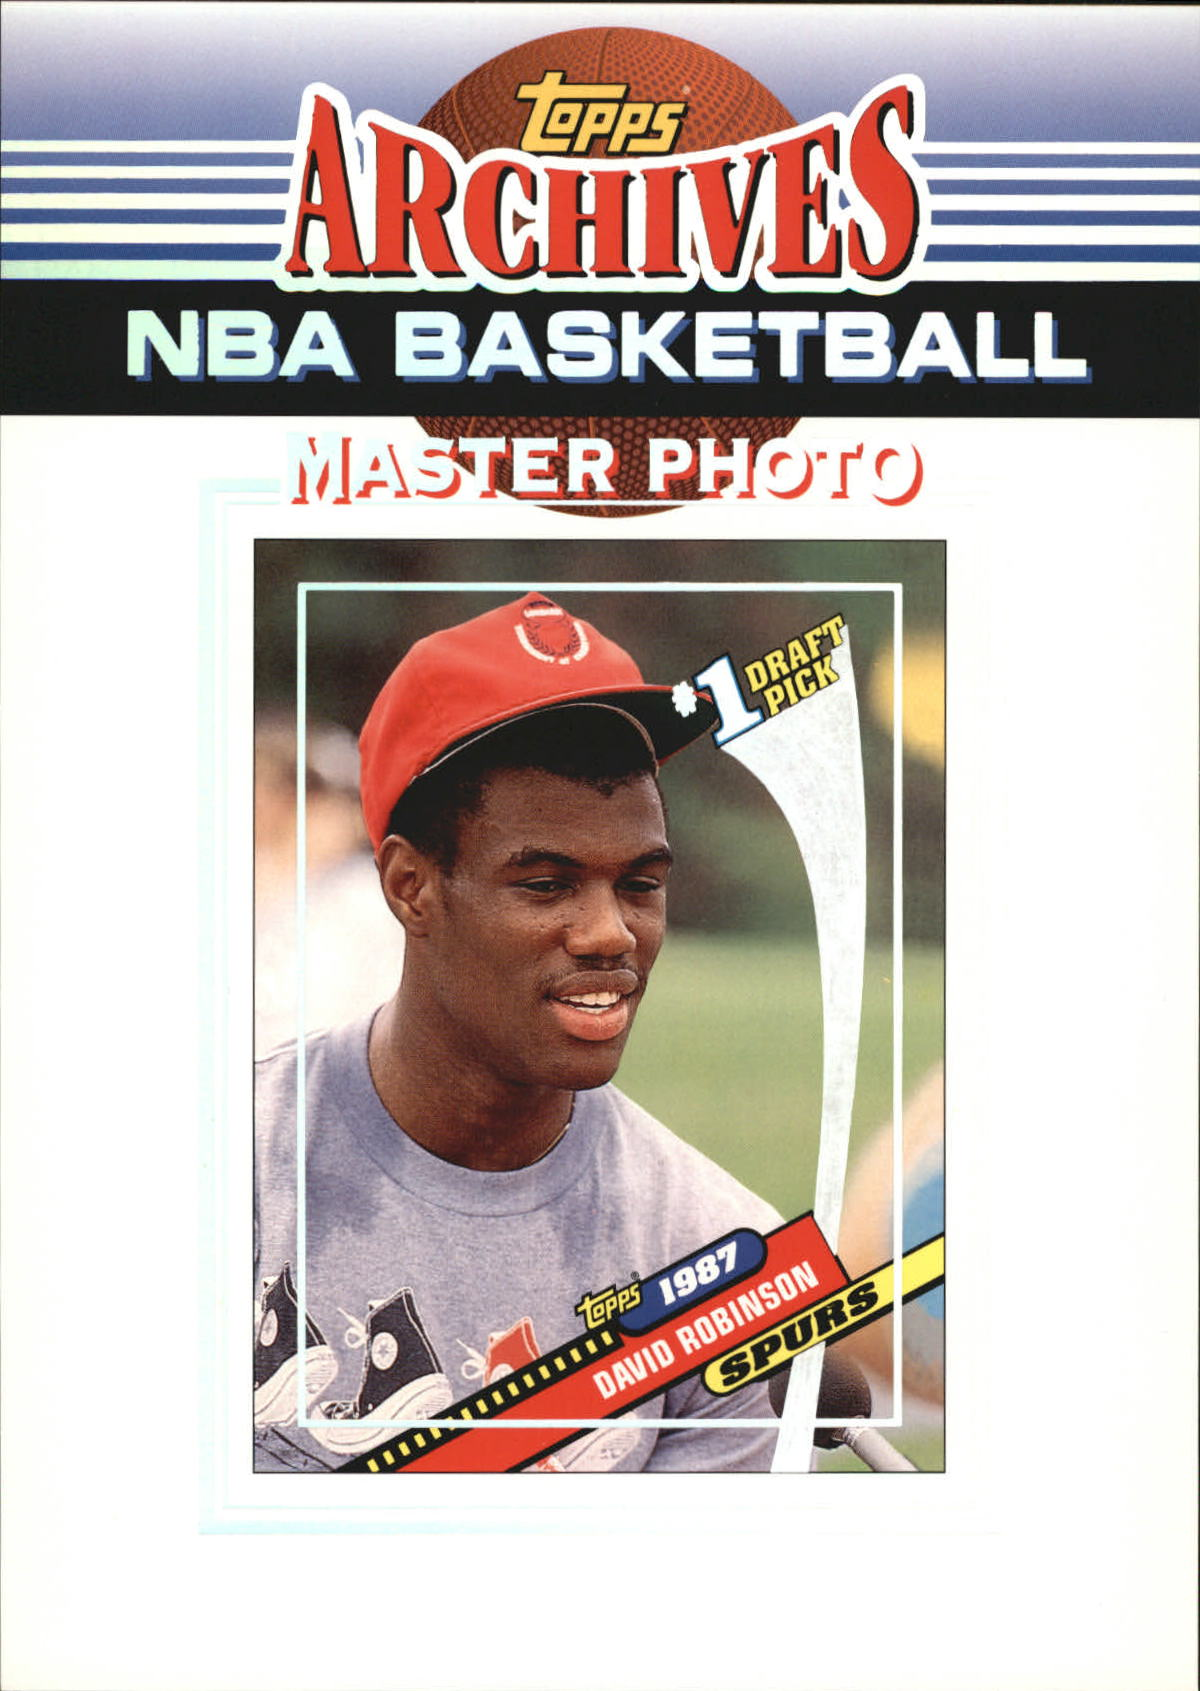 1992-93 Topps Archives Master Photos #1987 David Robinson